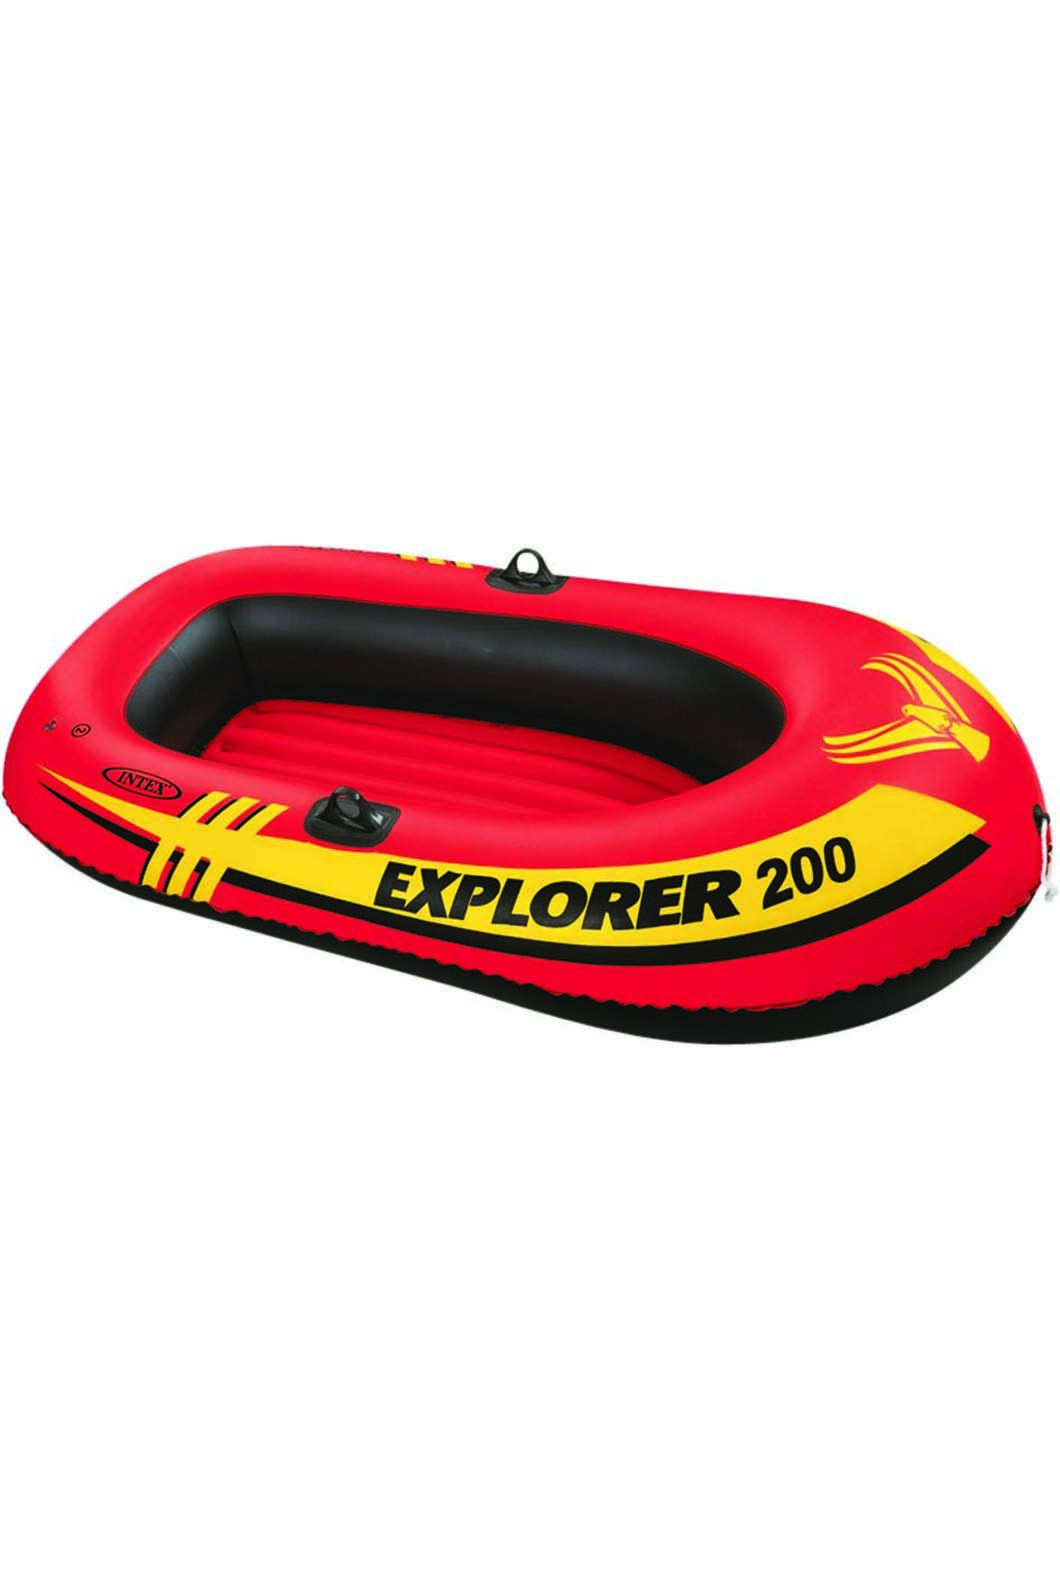 Intex Explorer 200 Inflatable Boat, None, hi-res